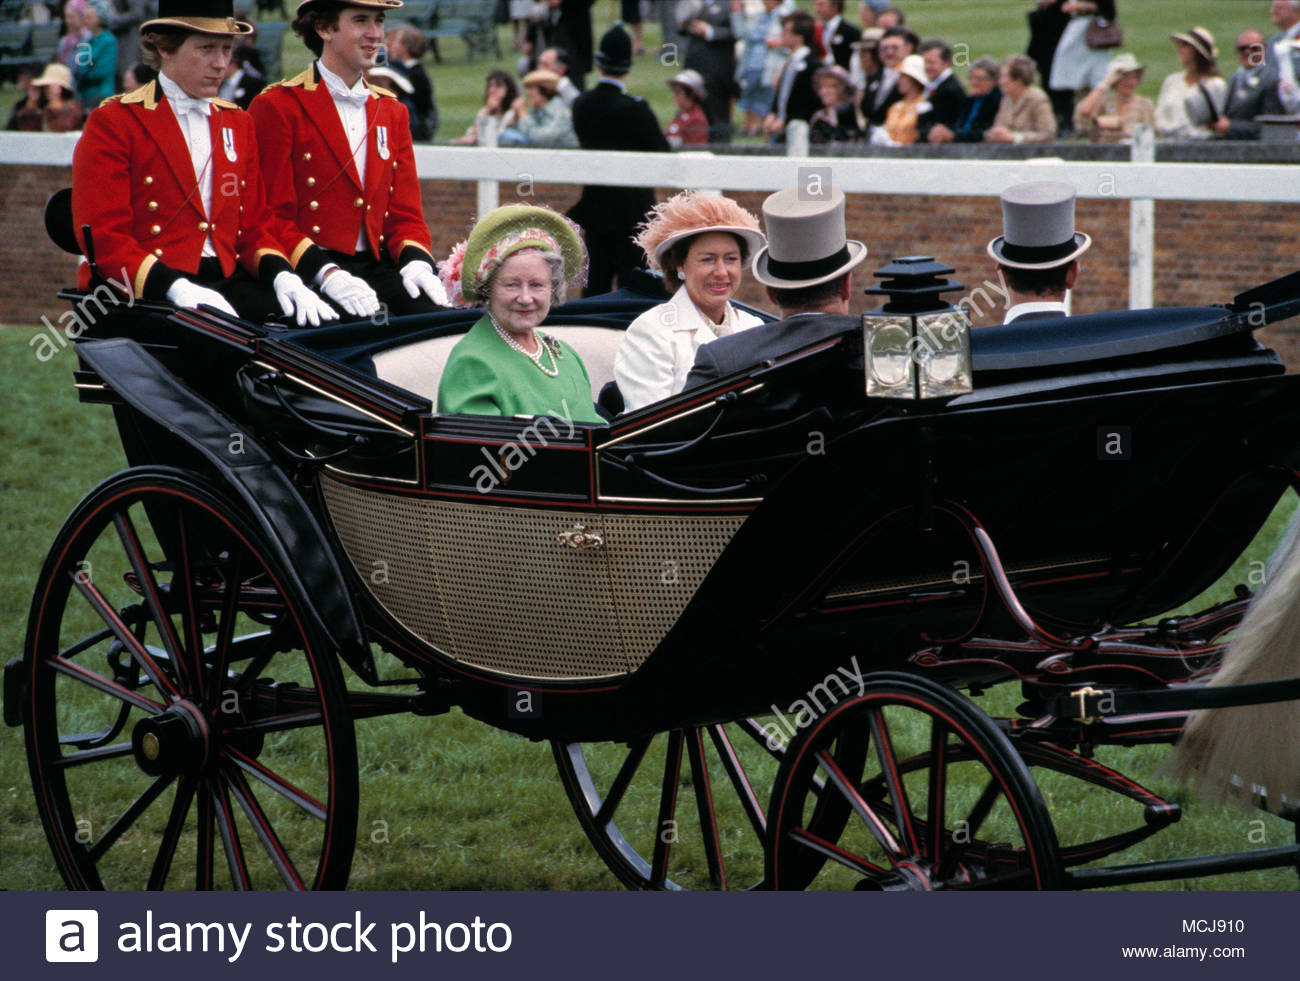 Princess Margaret and the Queen Mother riding in an open, horse-drawn carriage at Royal Ascot Racecourse on June 23rd, 1978. - Stock Image